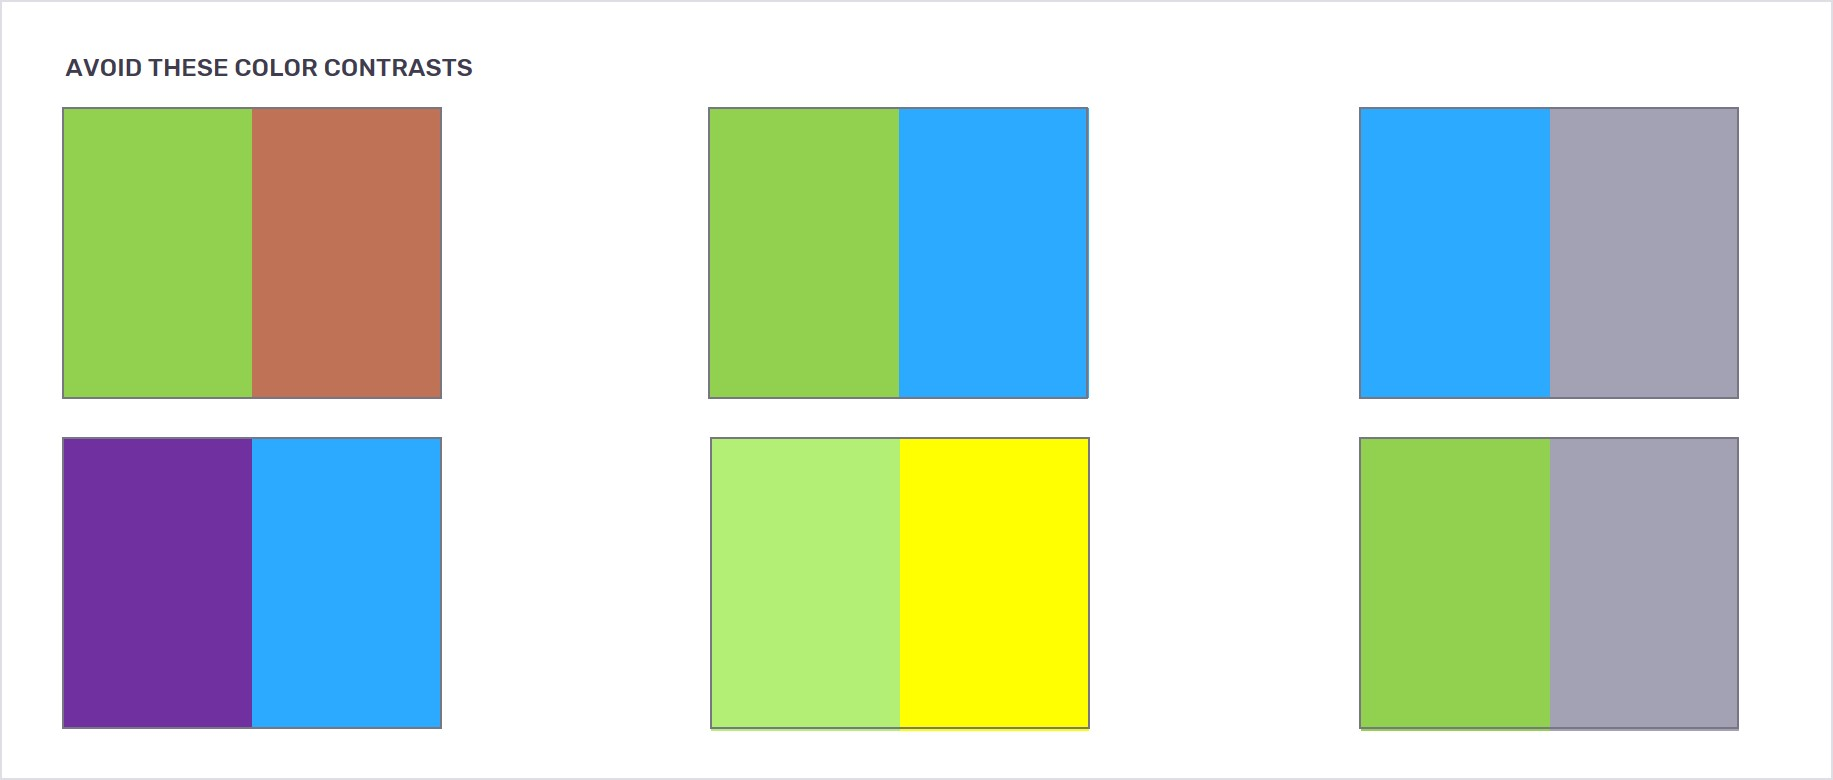 Color contrasts to avoid